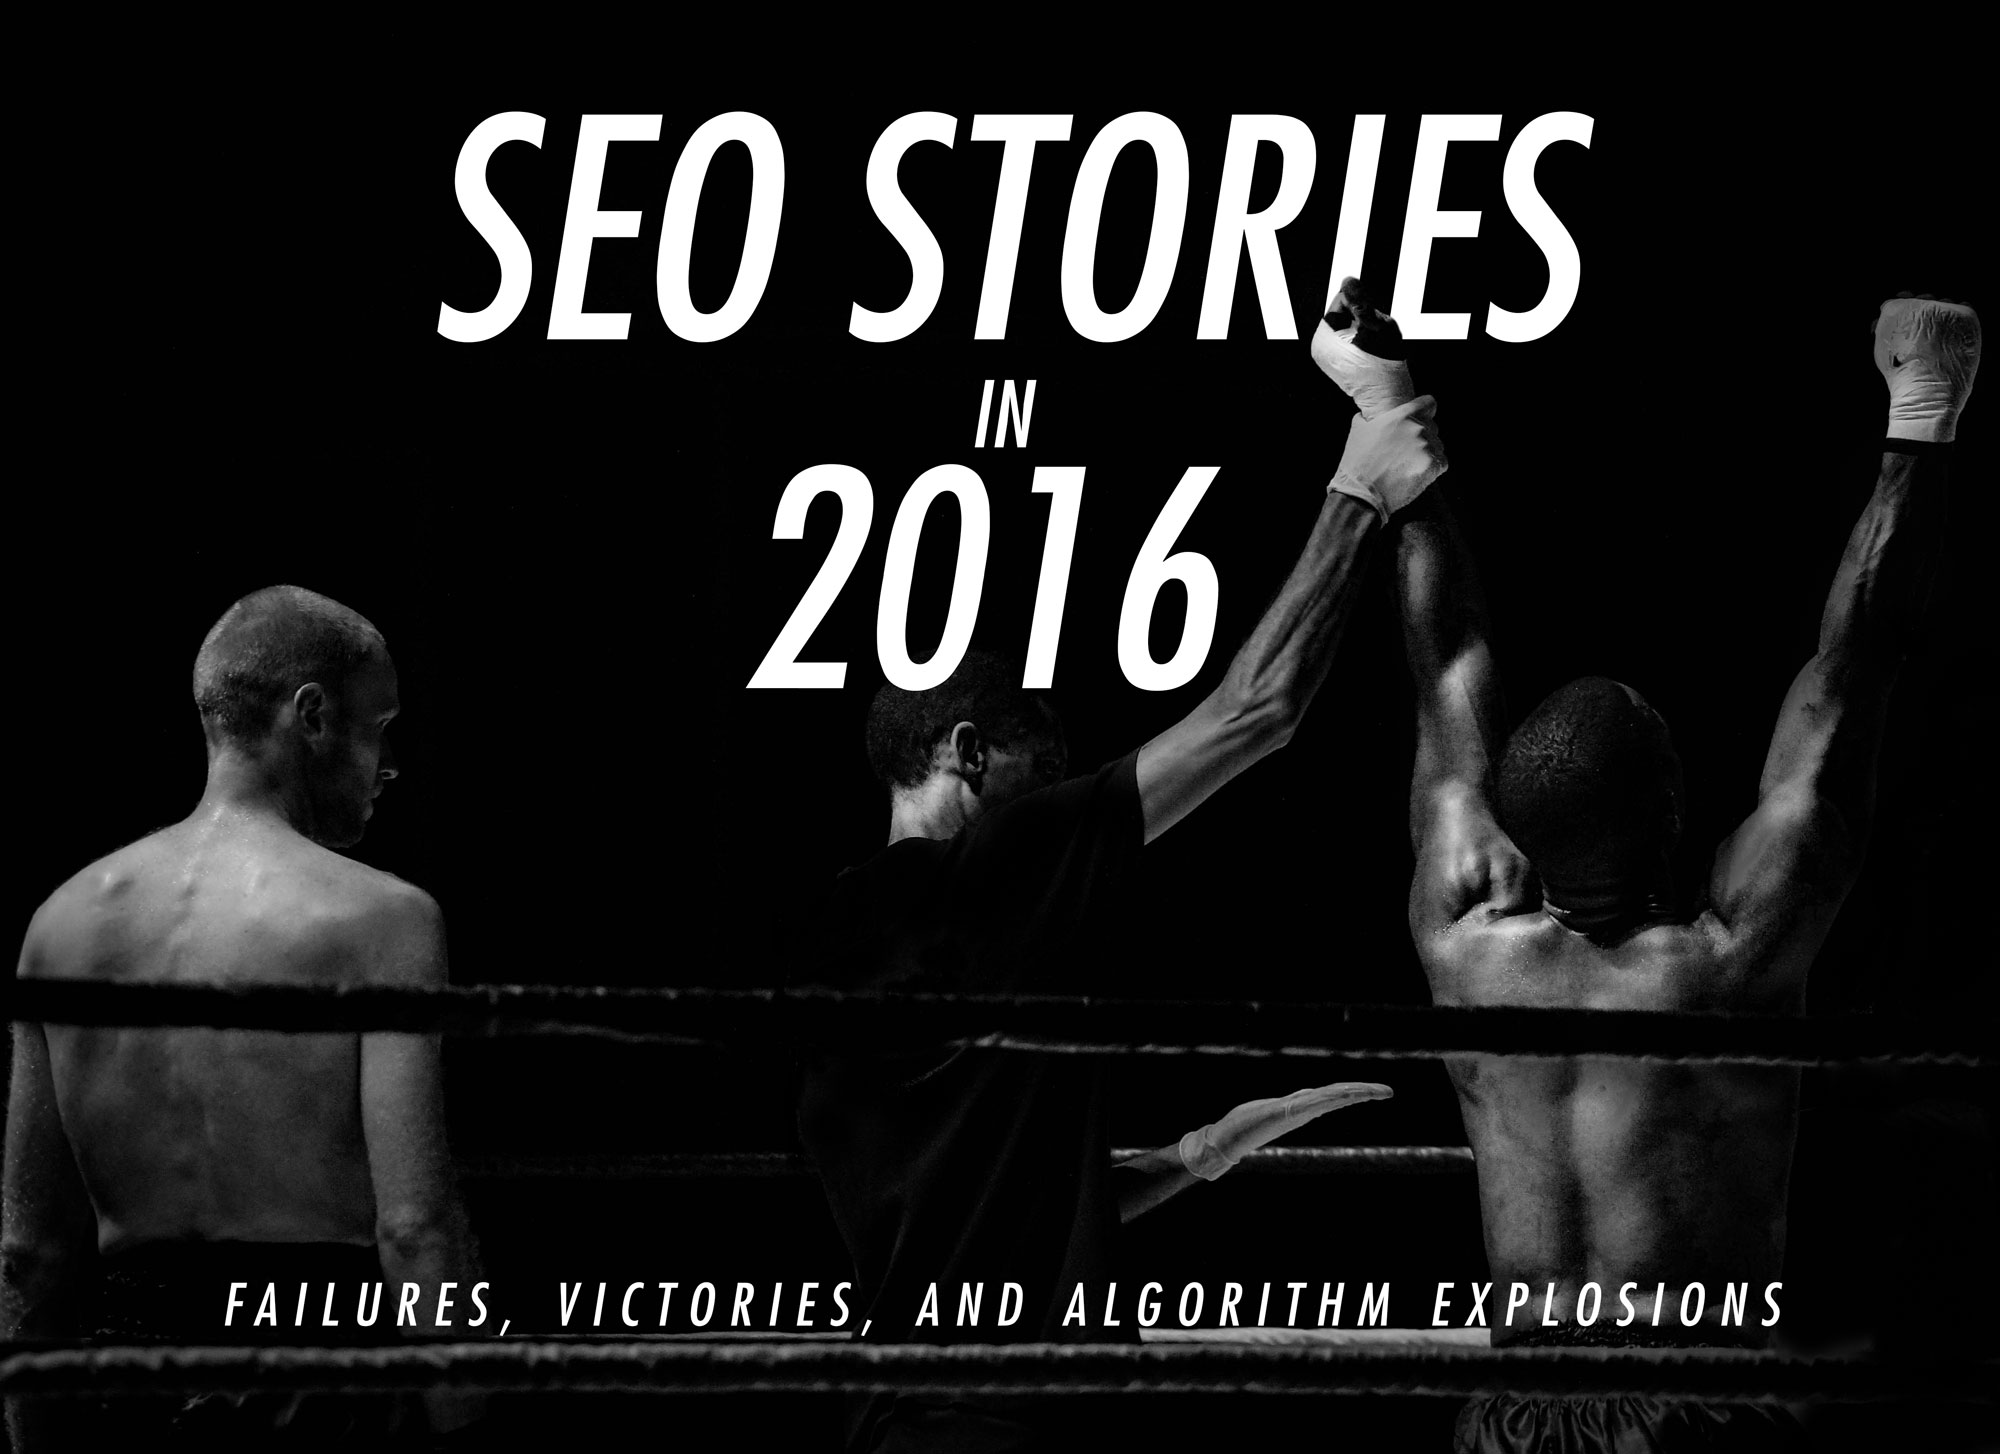 seo stories from 2016